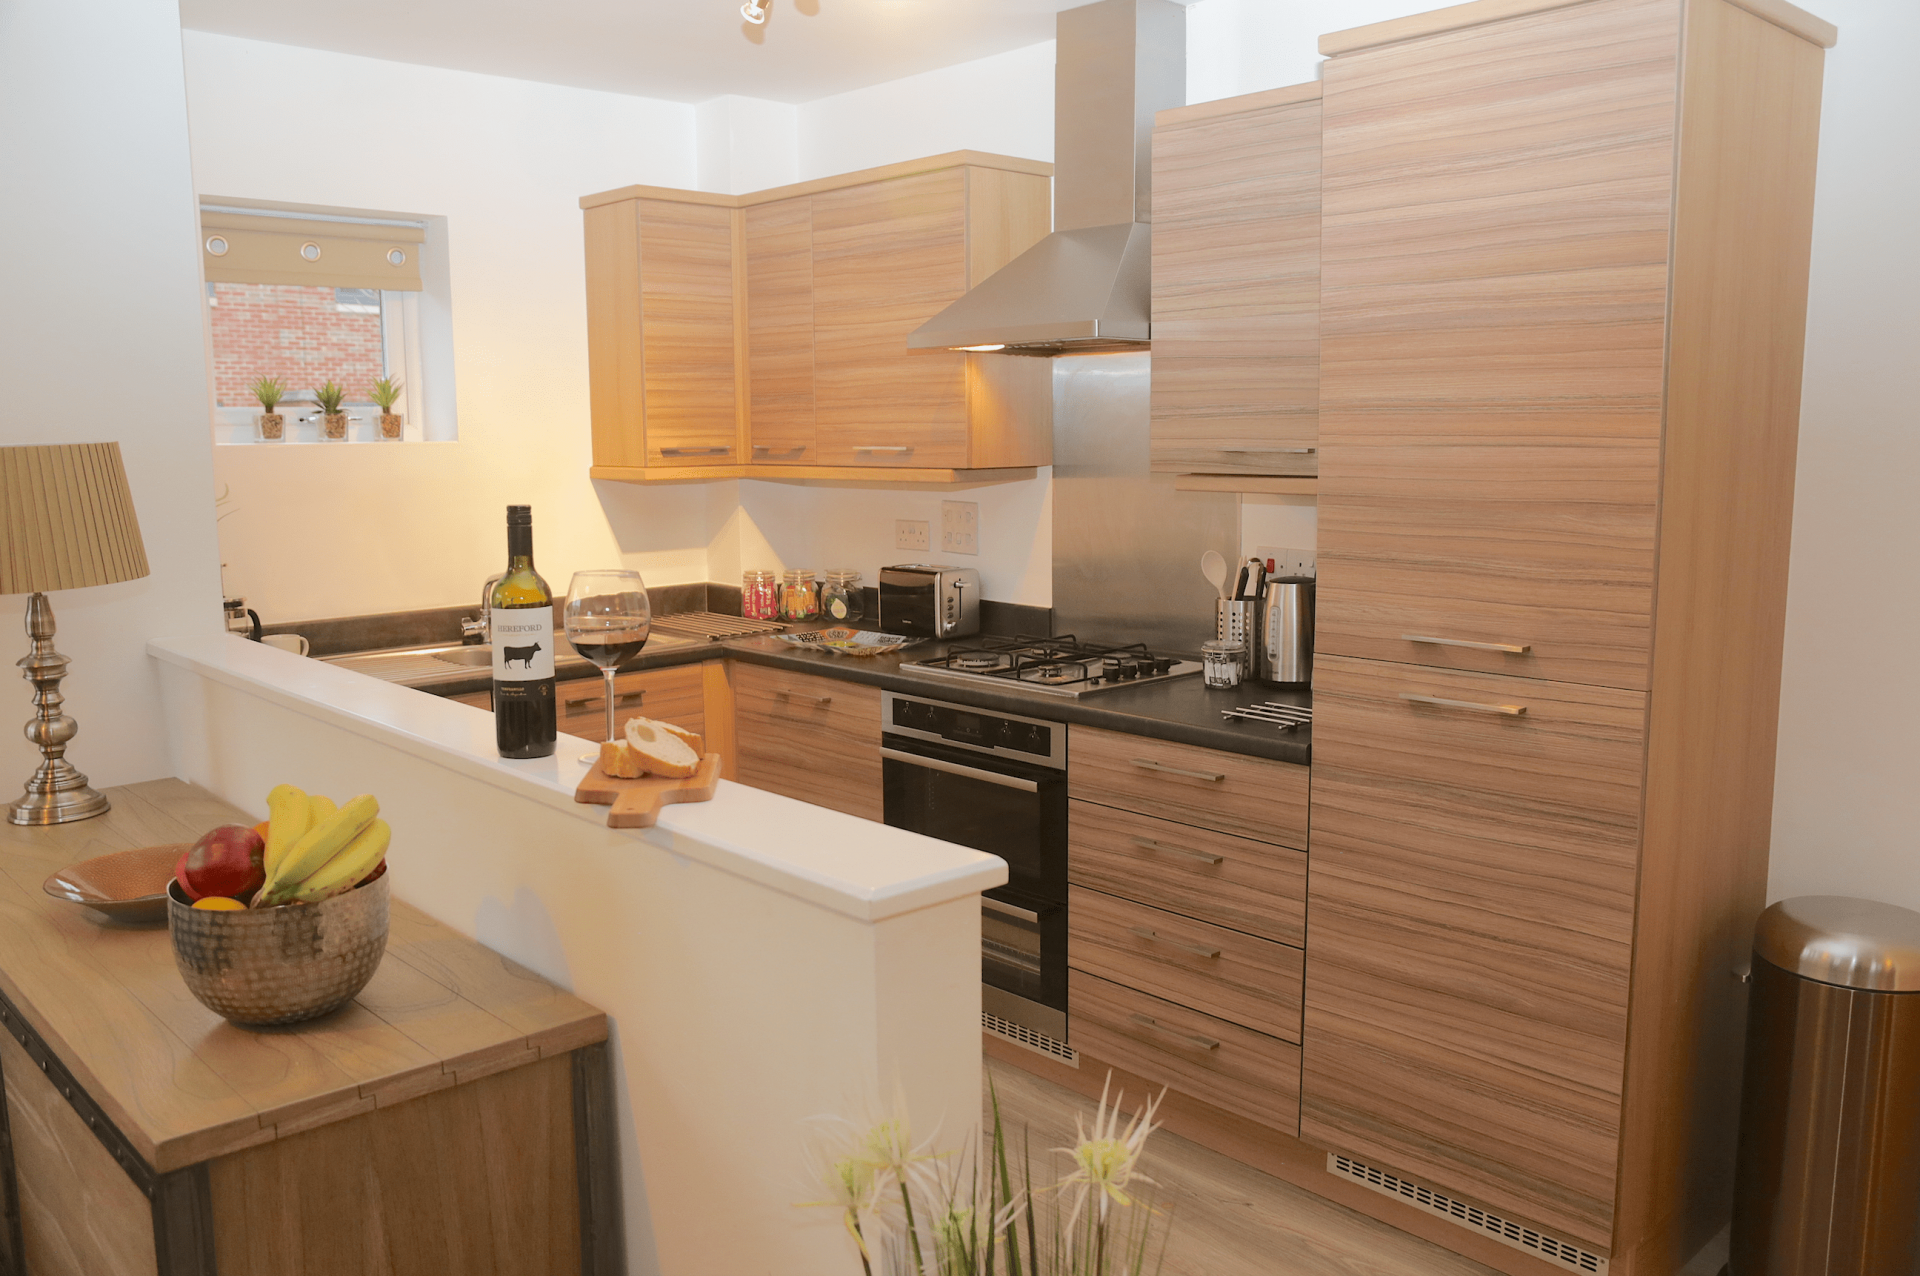 Kitchen at Gateway Apartment Nottingham, Wilford, Nottingham - Citybase Apartments